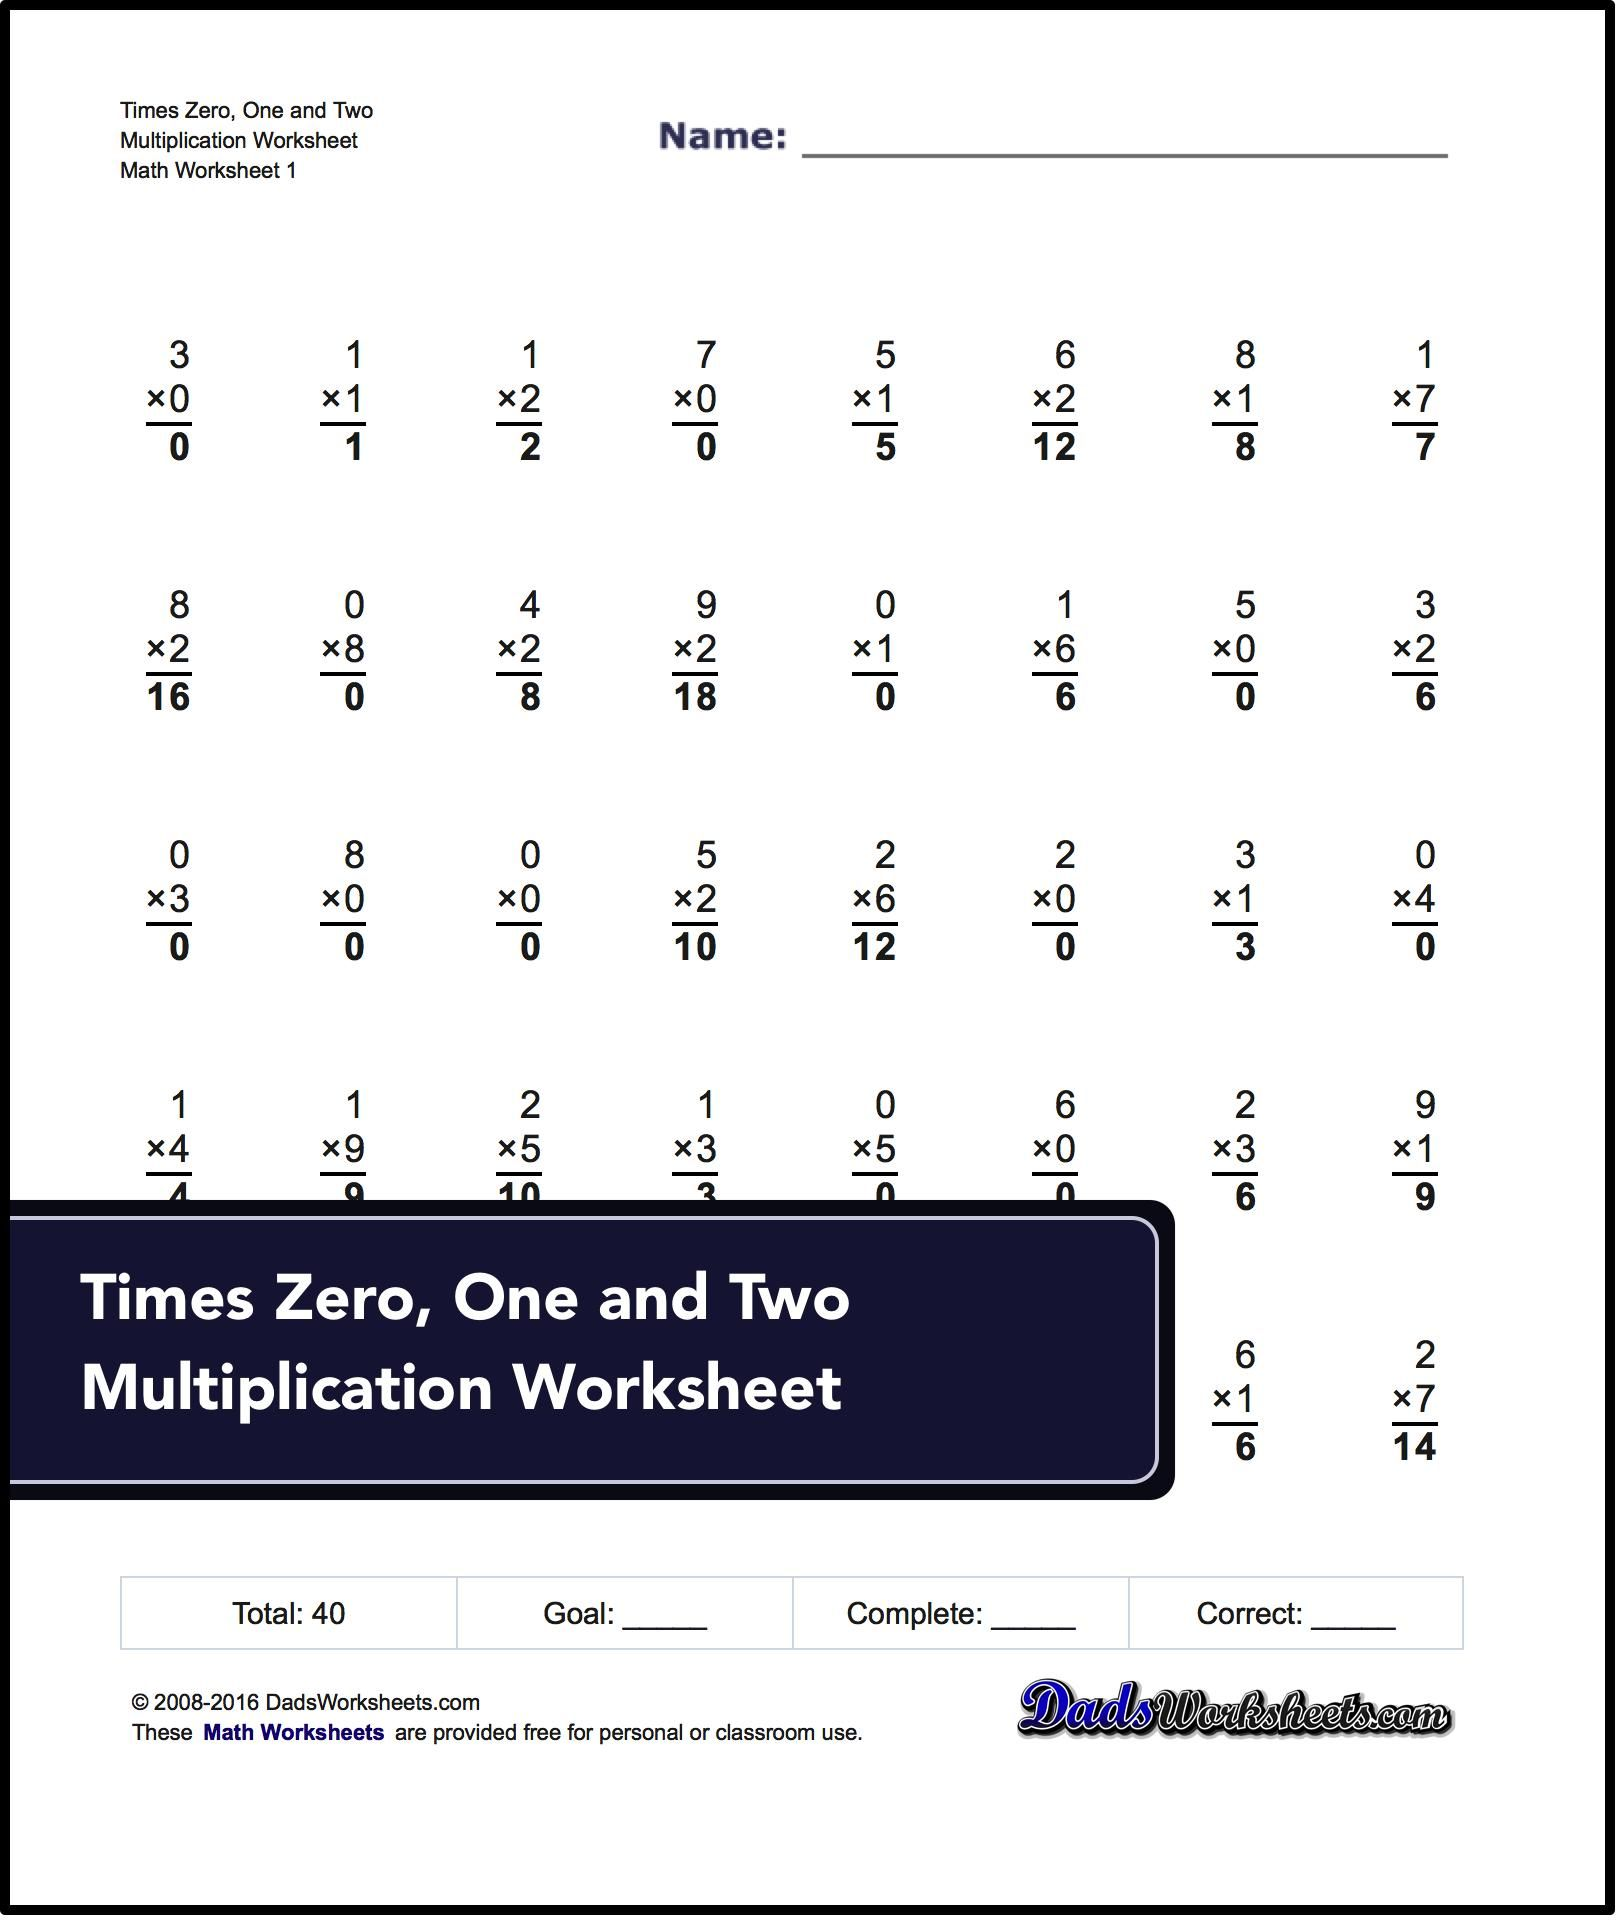 worksheet Fact Triangles Multiplication And Division Worksheets worksheet multiplication fact families grass fedjp study free triangles worksheets activity shelter printable multiplication